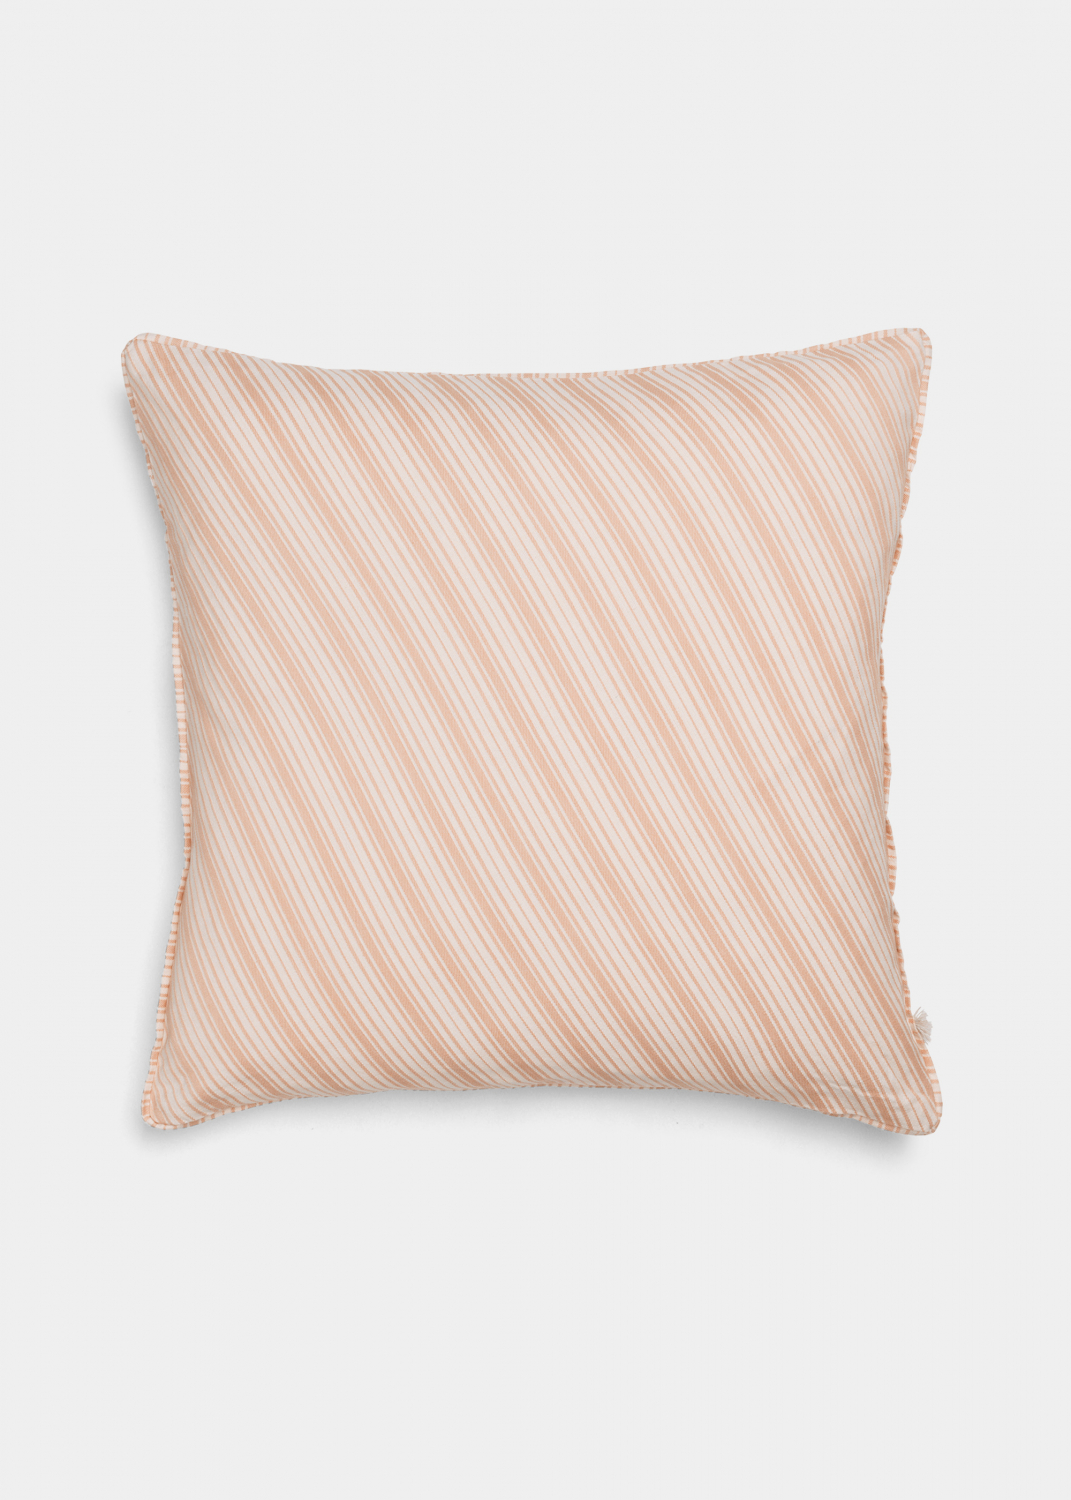 Cushions - Pillow Dobby Striped (50x50) Thumbnail